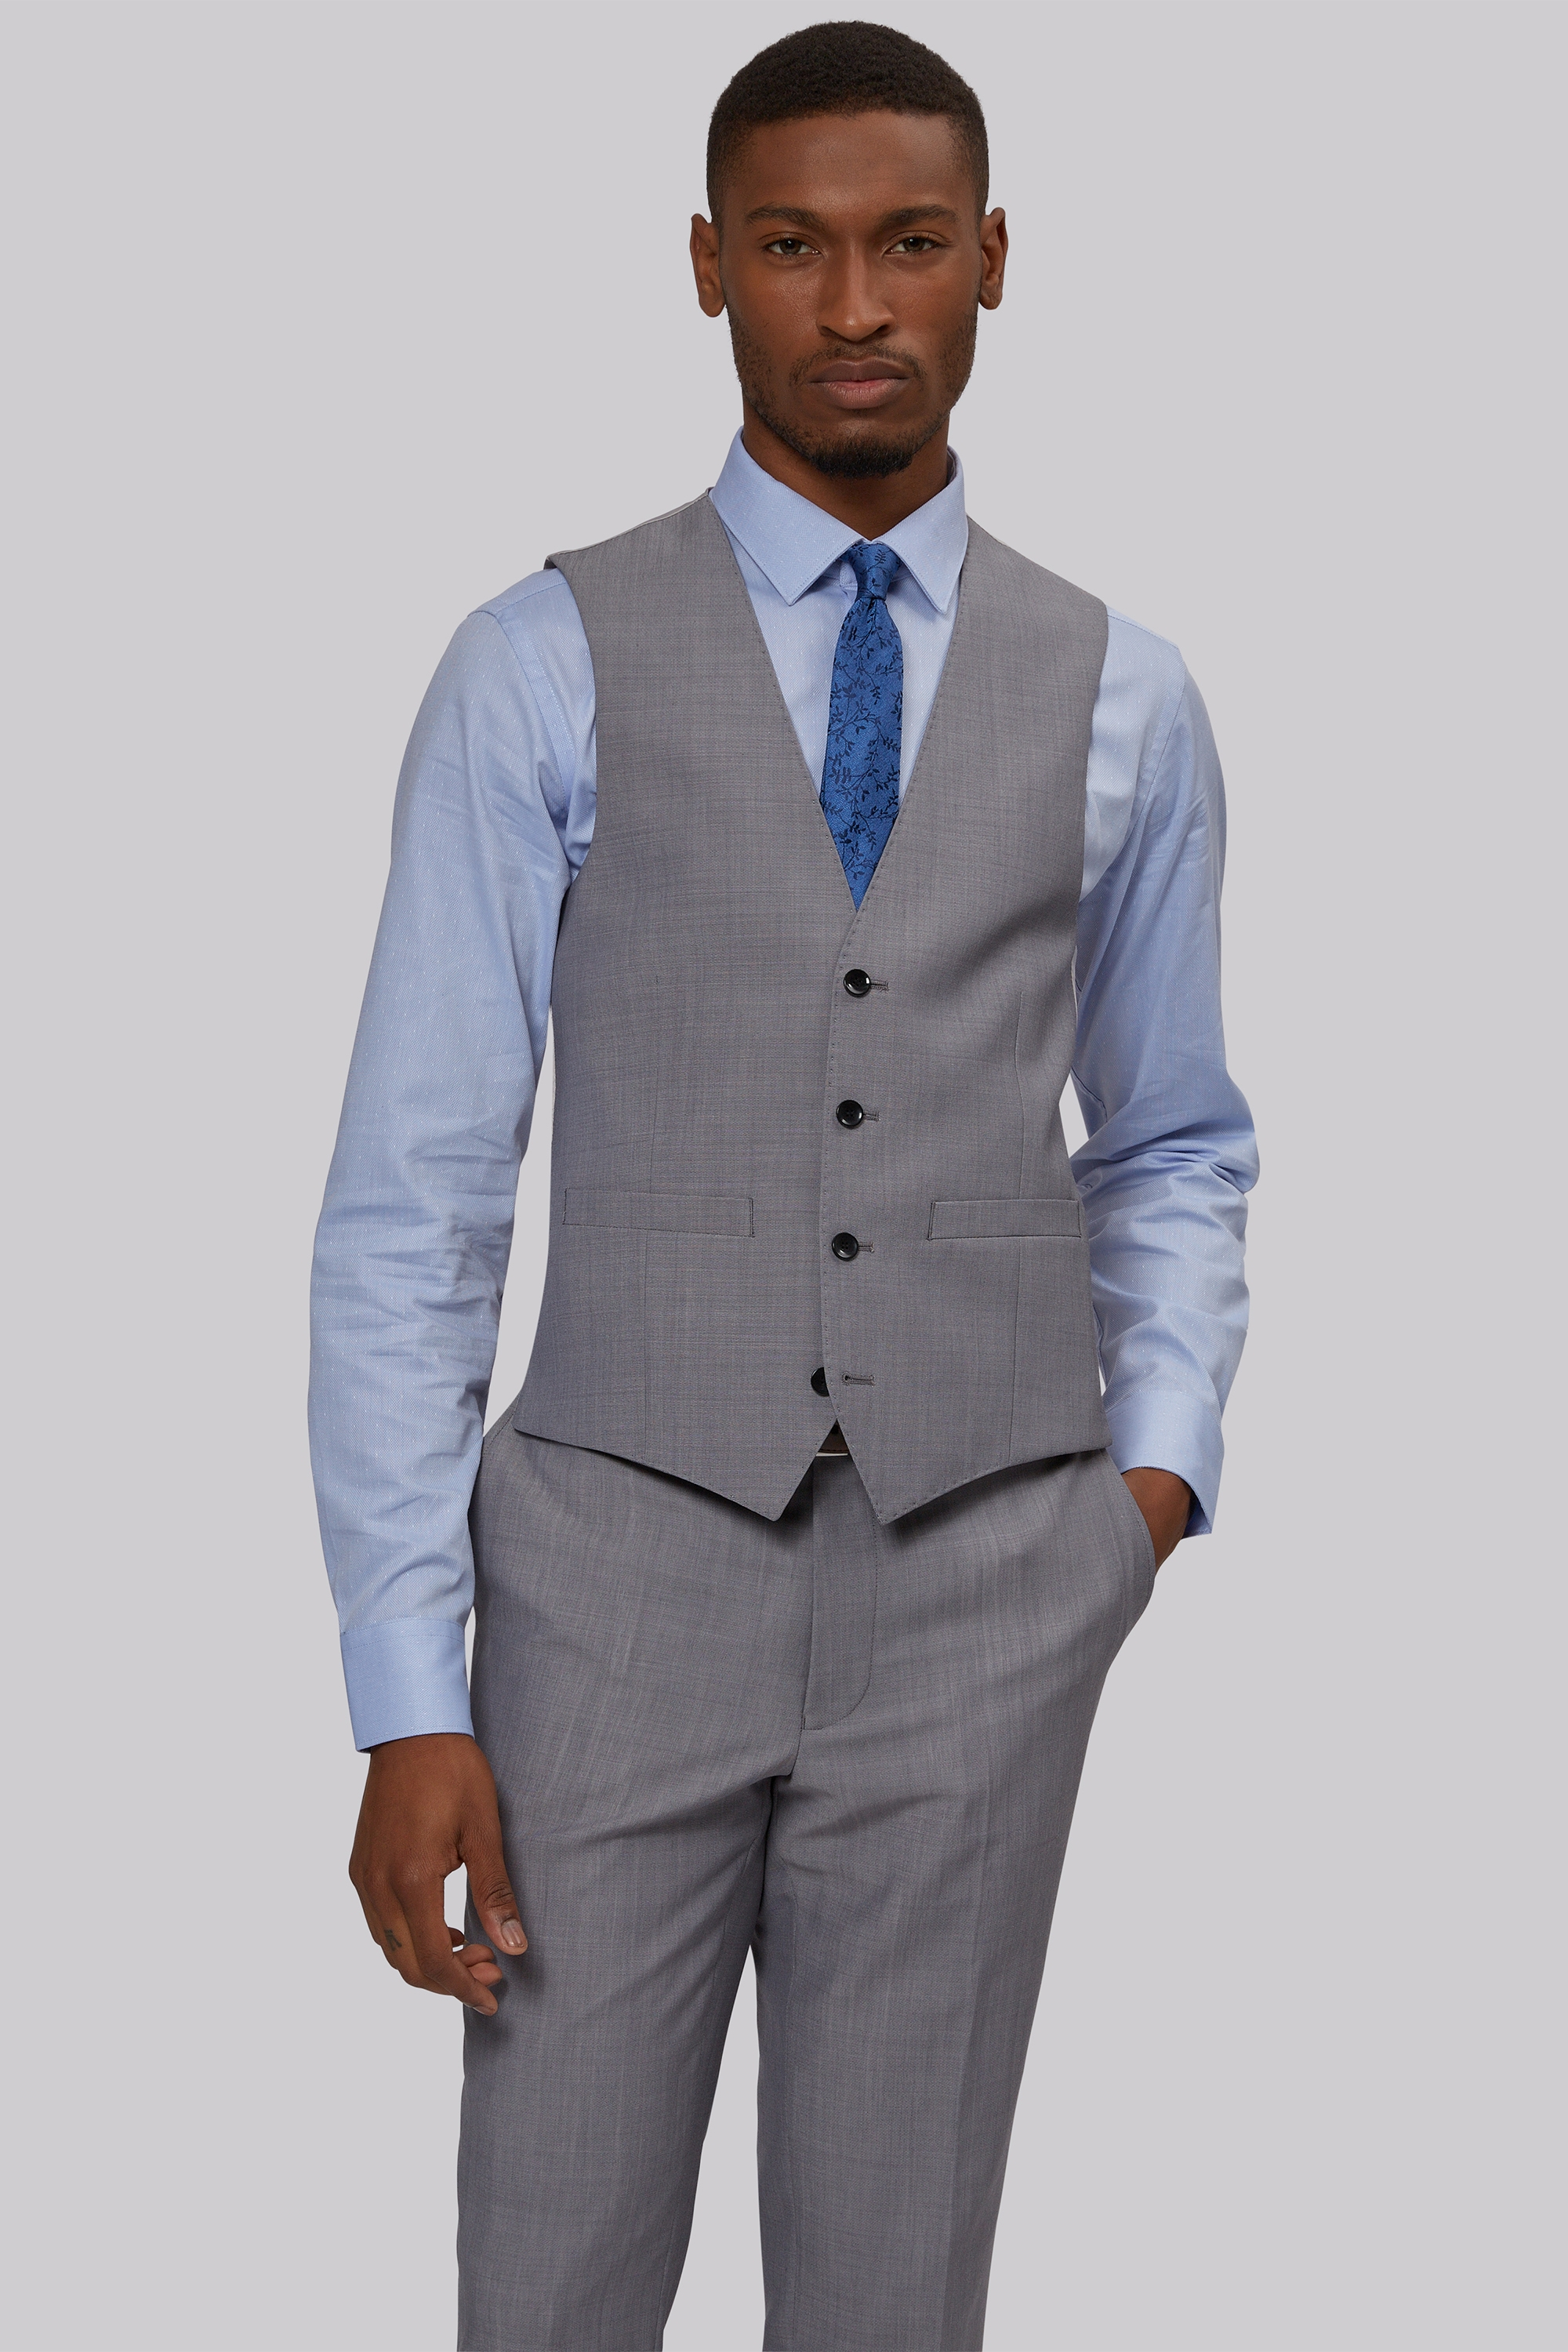 Bring a refined edge to your look with a smart waistcoat. Checks, Donegal or single breasted; our range offers the perfect match for your shirt. Our tailored waistcoats in navy, black and grey exude a sense of sophistication, thus completing your formal attire.